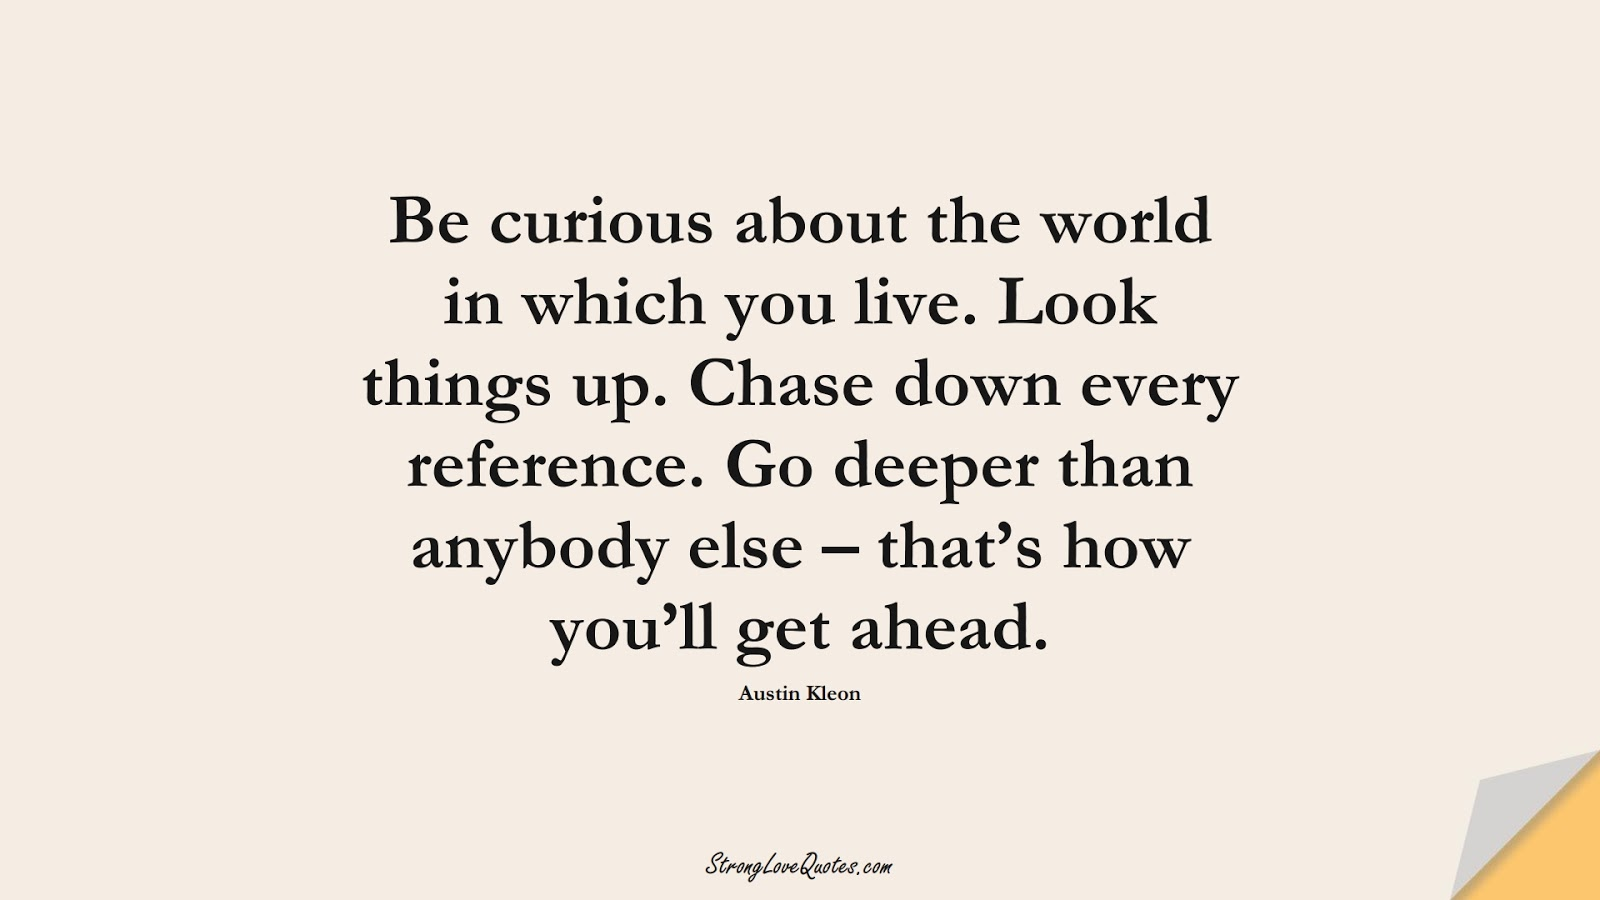 Be curious about the world in which you live. Look things up. Chase down every reference. Go deeper than anybody else – that's how you'll get ahead. (Austin Kleon);  #LearningQuotes